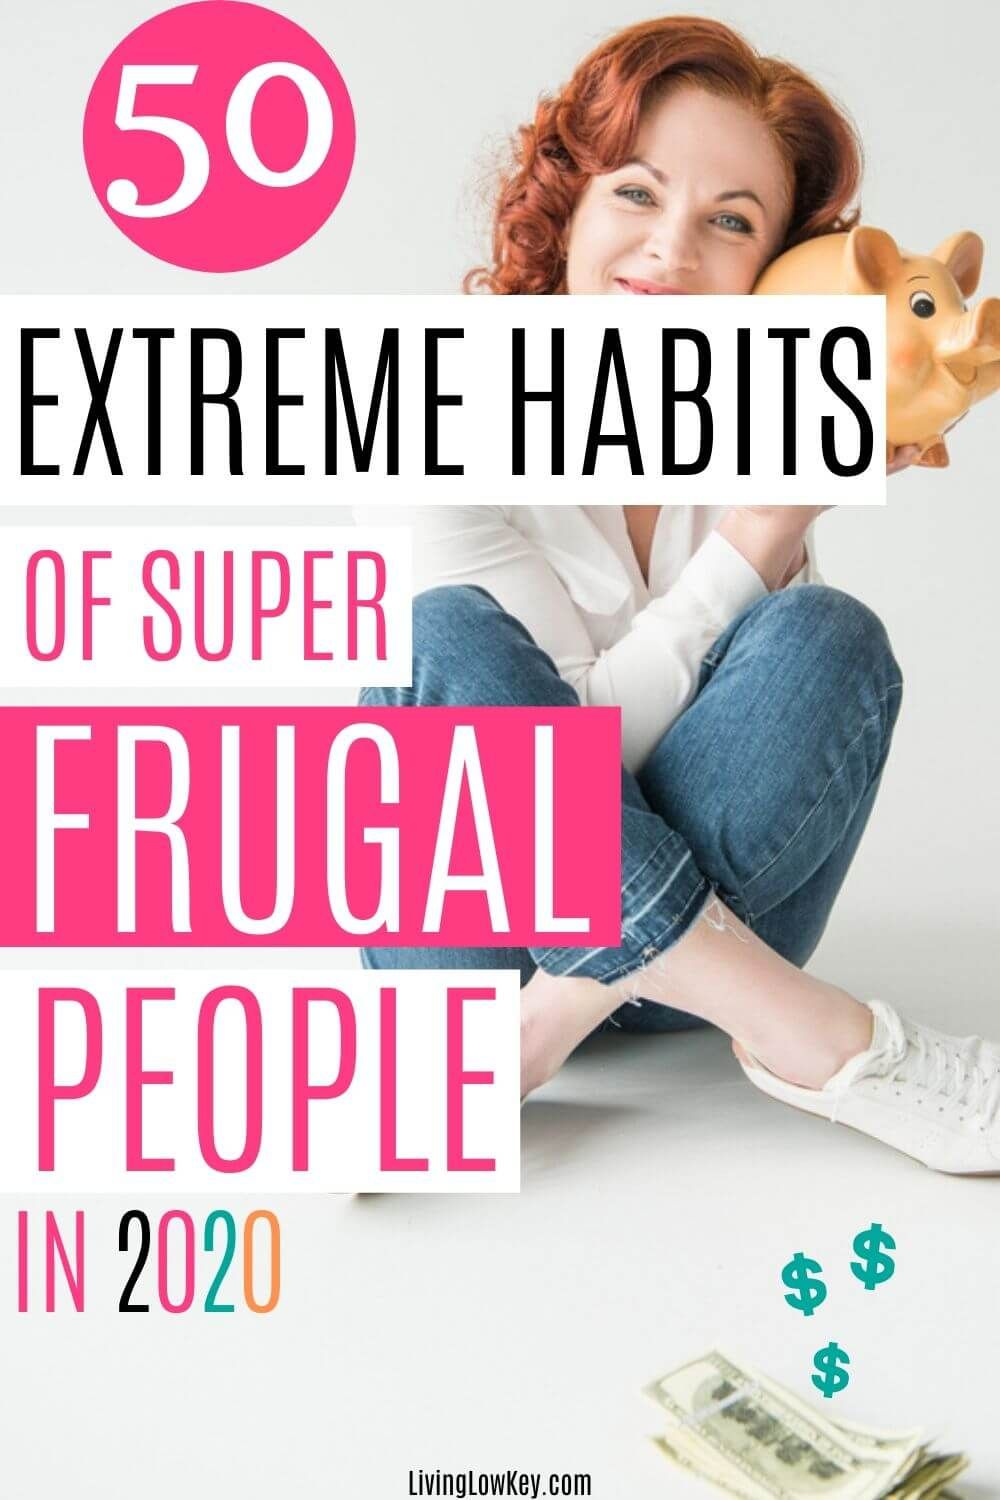 Extreme habits of super frugal people. These are some the best frugal living tips I've found. If you are ready to stop being poor make sure to introduce these habits into your daily life. #frugalliving #frugallivingtips #frugallivingideas #frugallivinghacks #savingmoney